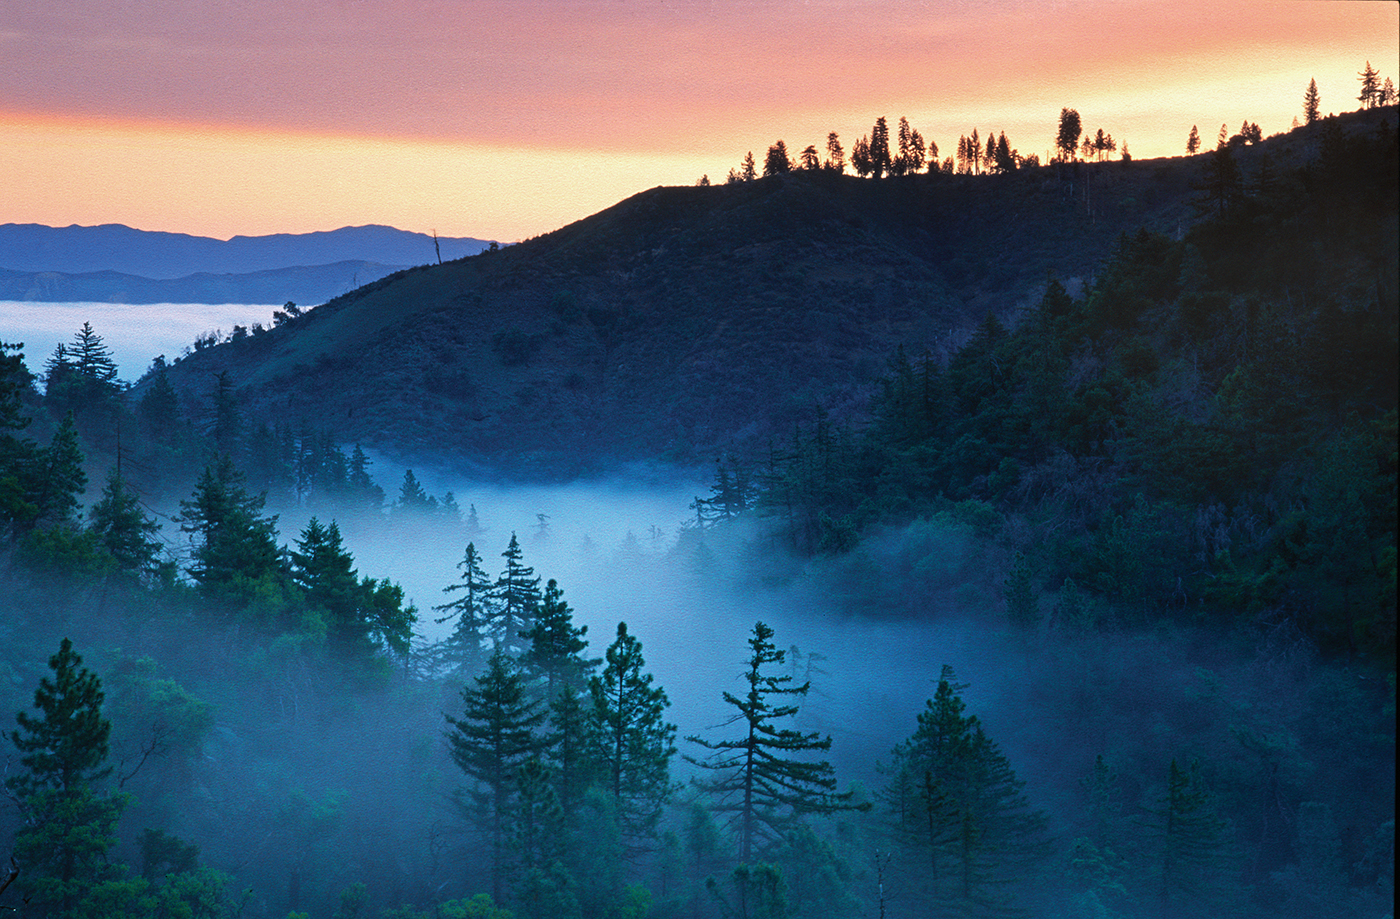 Fog on Figueroa Mountain. Photo by Stuart Wilson.